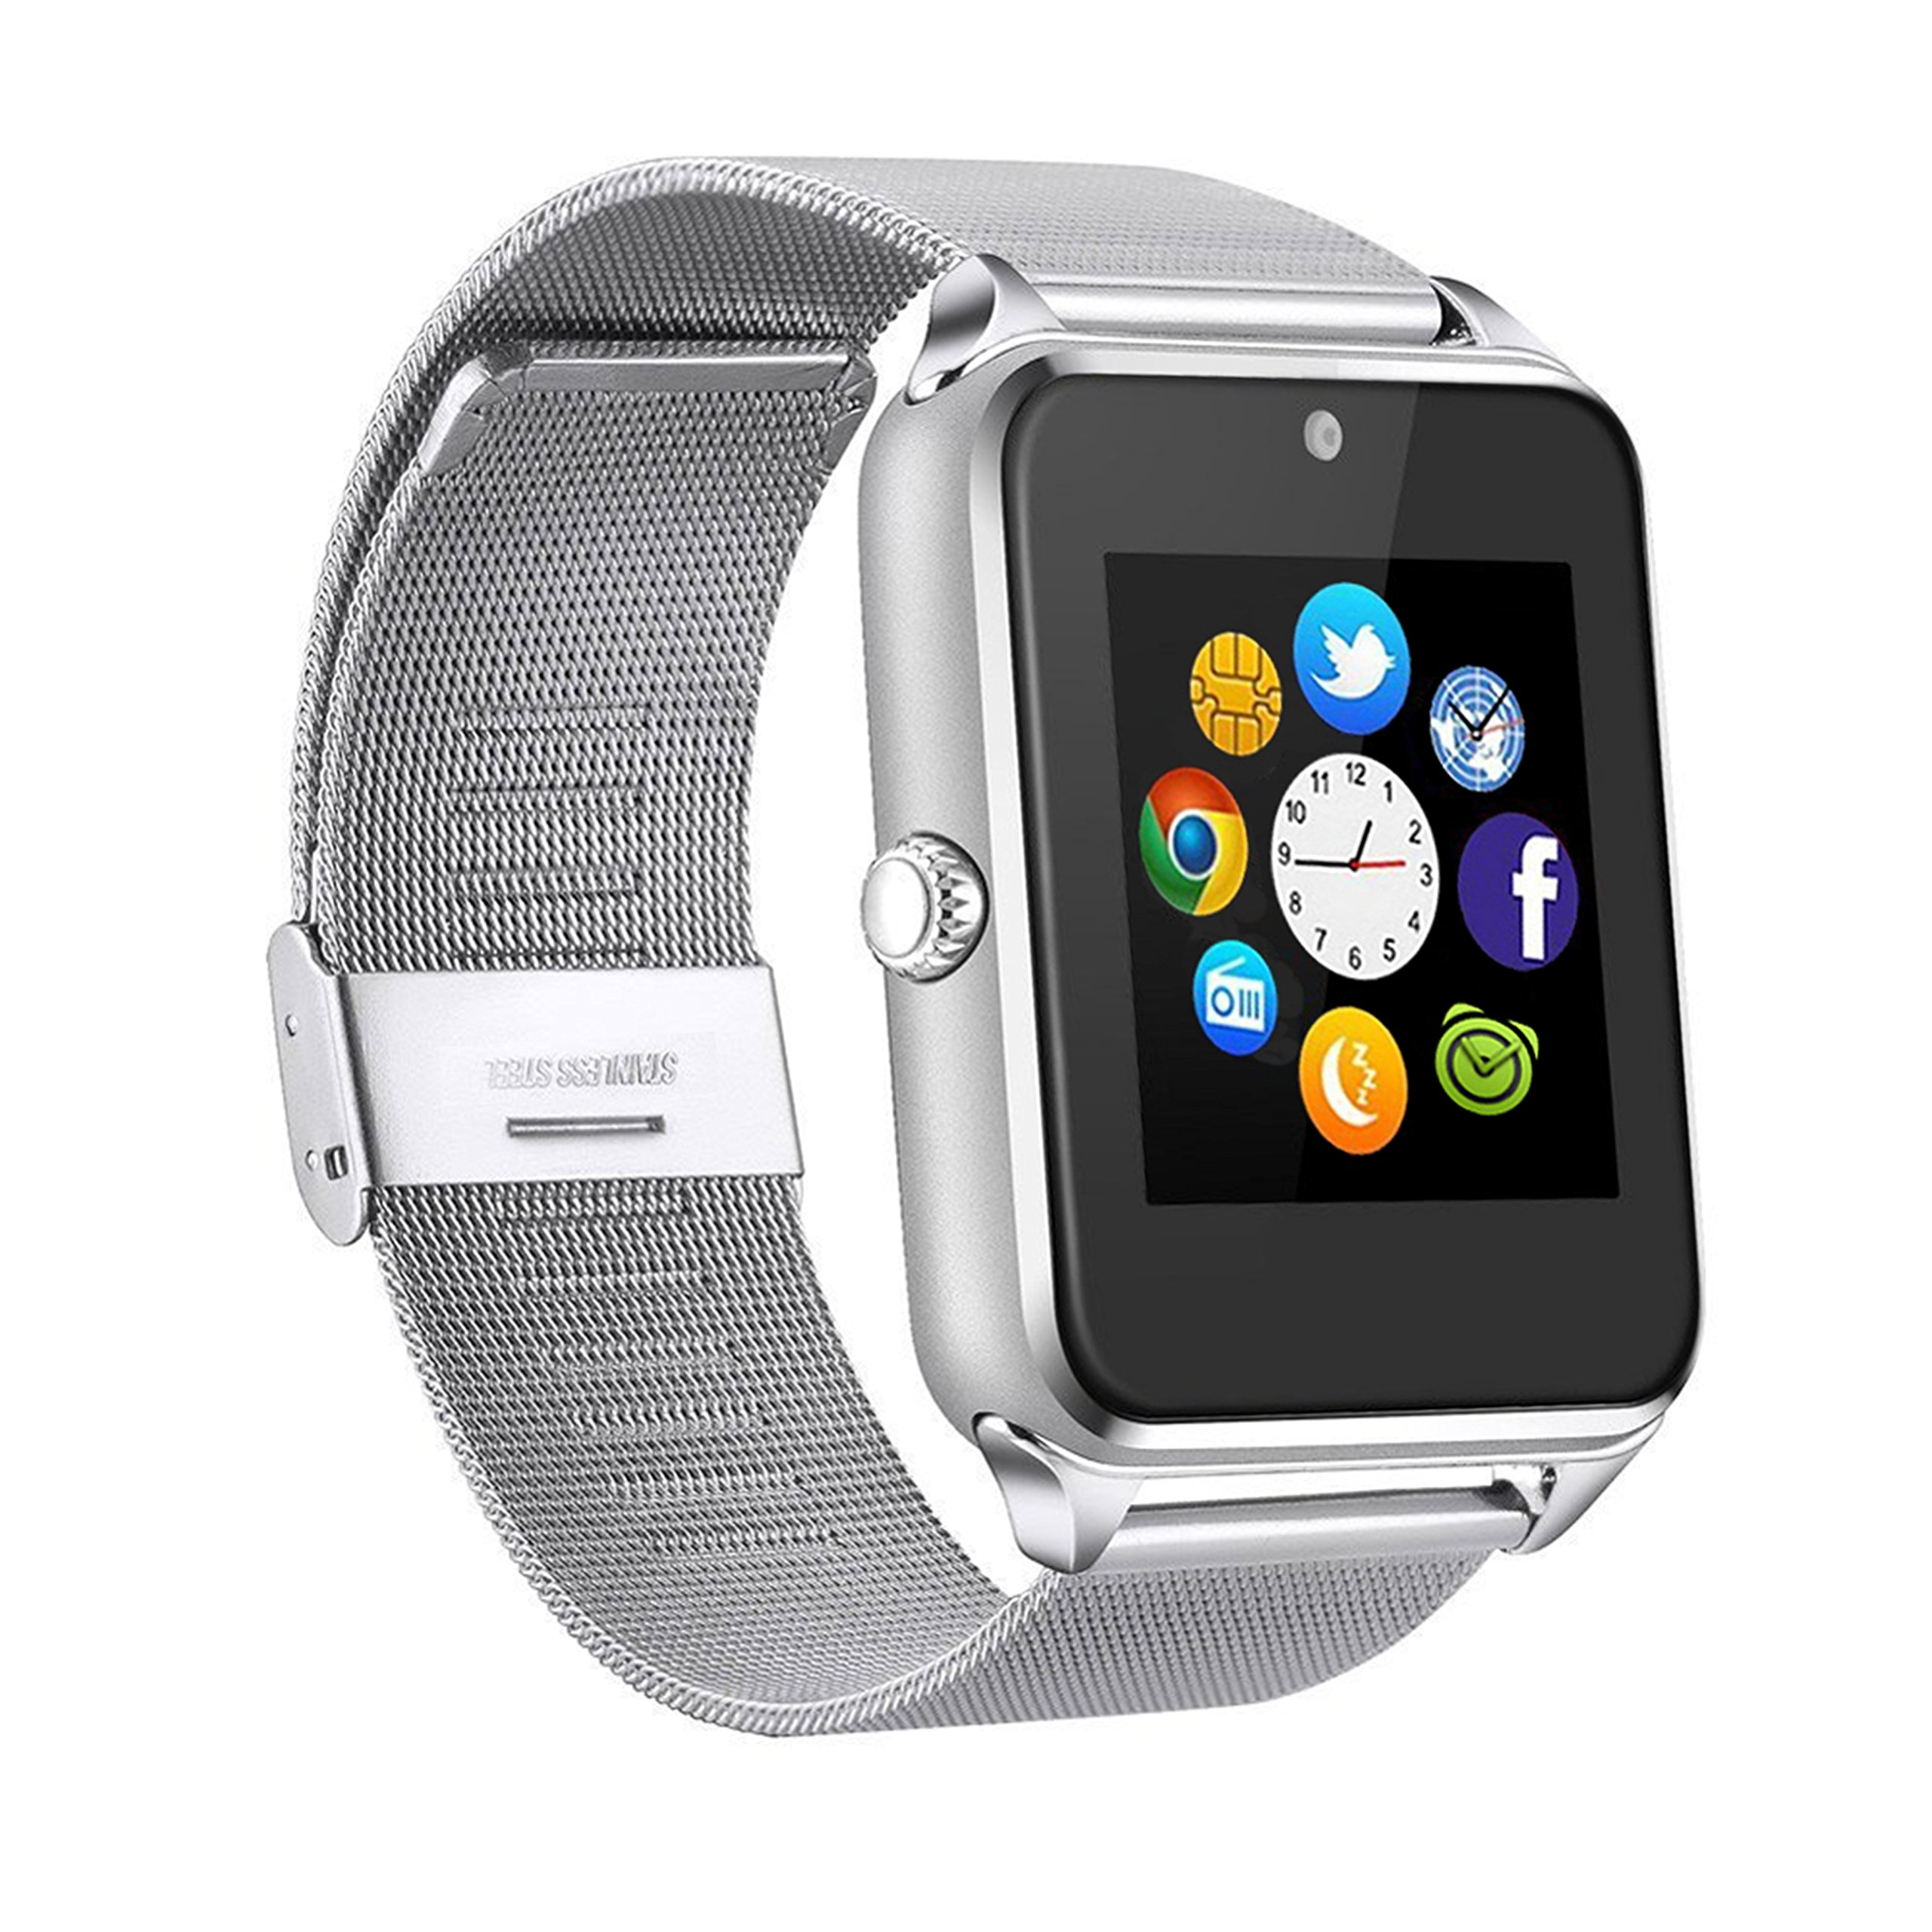 MSRM Replaceable Band Bluetooth Smart Watch Call Sync and Handfree Support Android 4.2 or Above and Iphone5s/6/6s/7/7s (Partial Functions for iPhone)